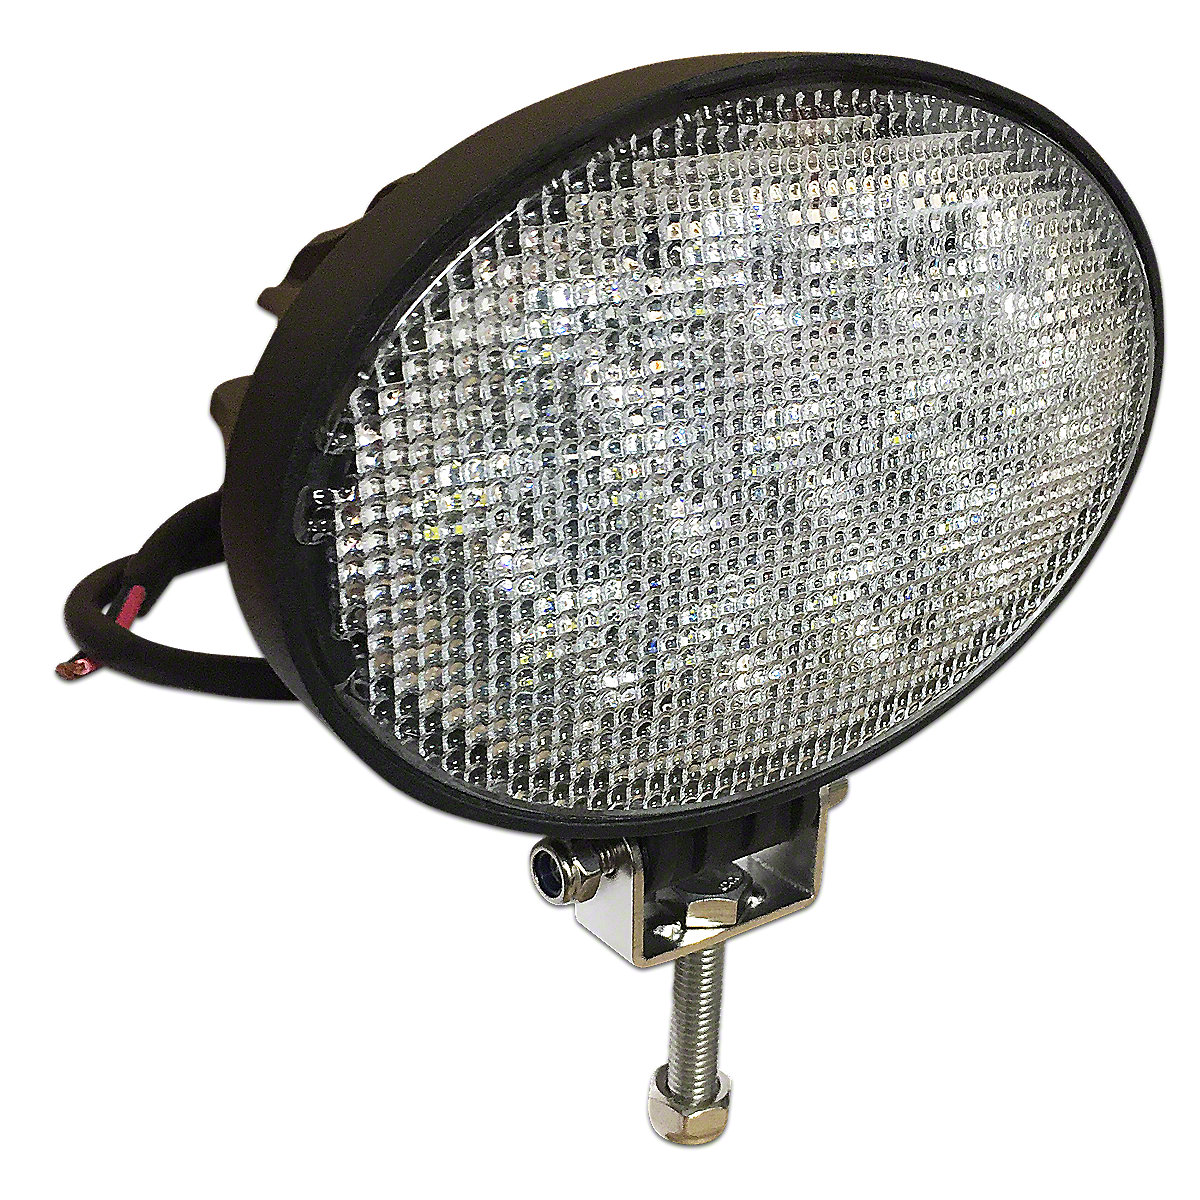 ABC4141 LED Oval Work Light